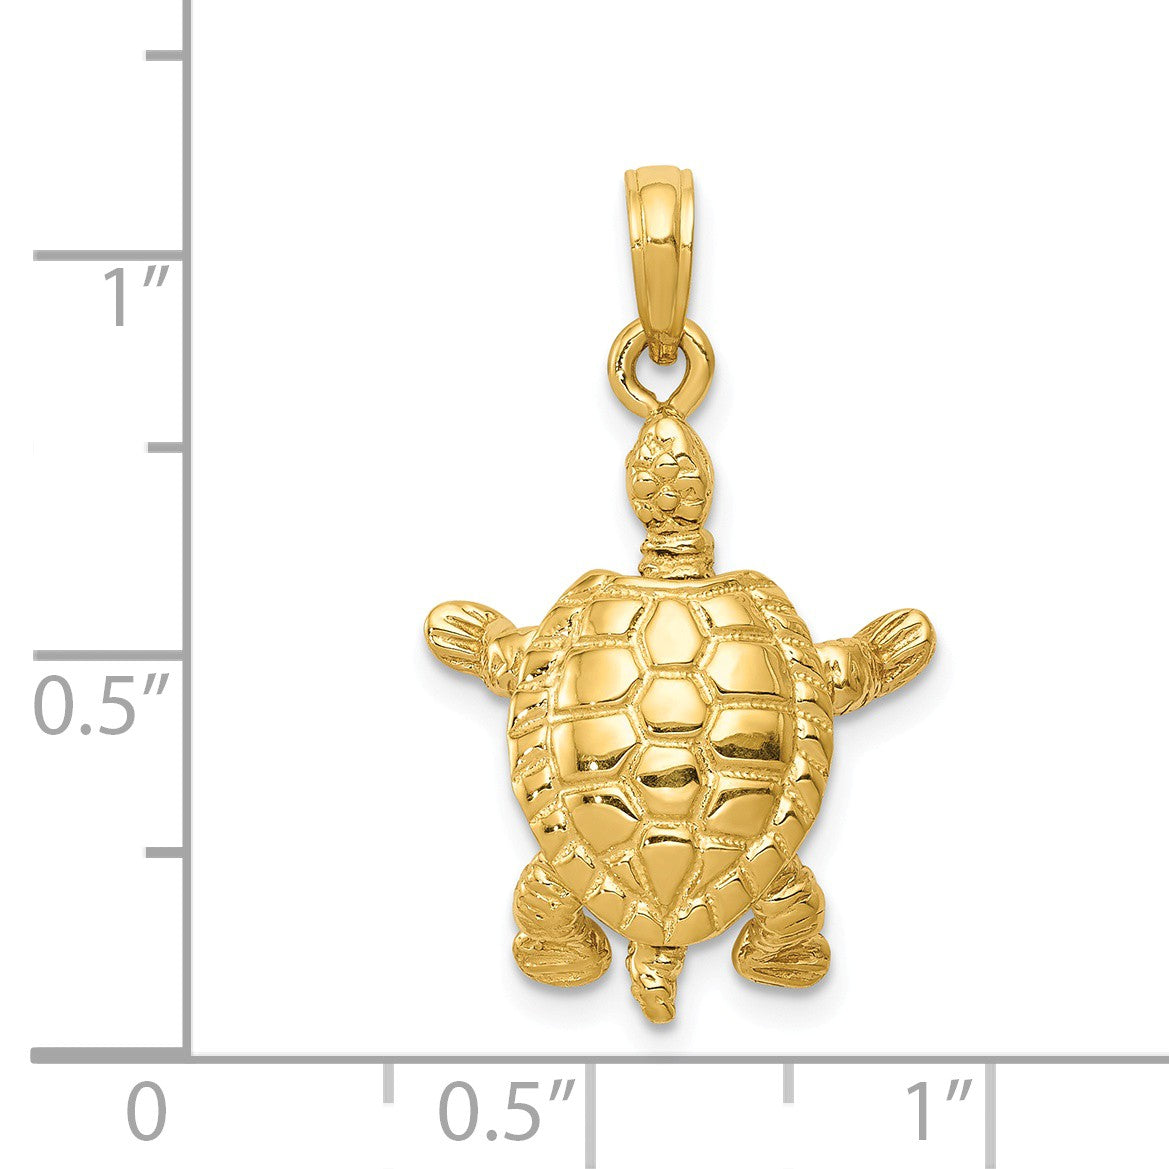 Alternate view of the 14k Yellow Gold Moveable 3D Turtle Pendant by The Black Bow Jewelry Co.